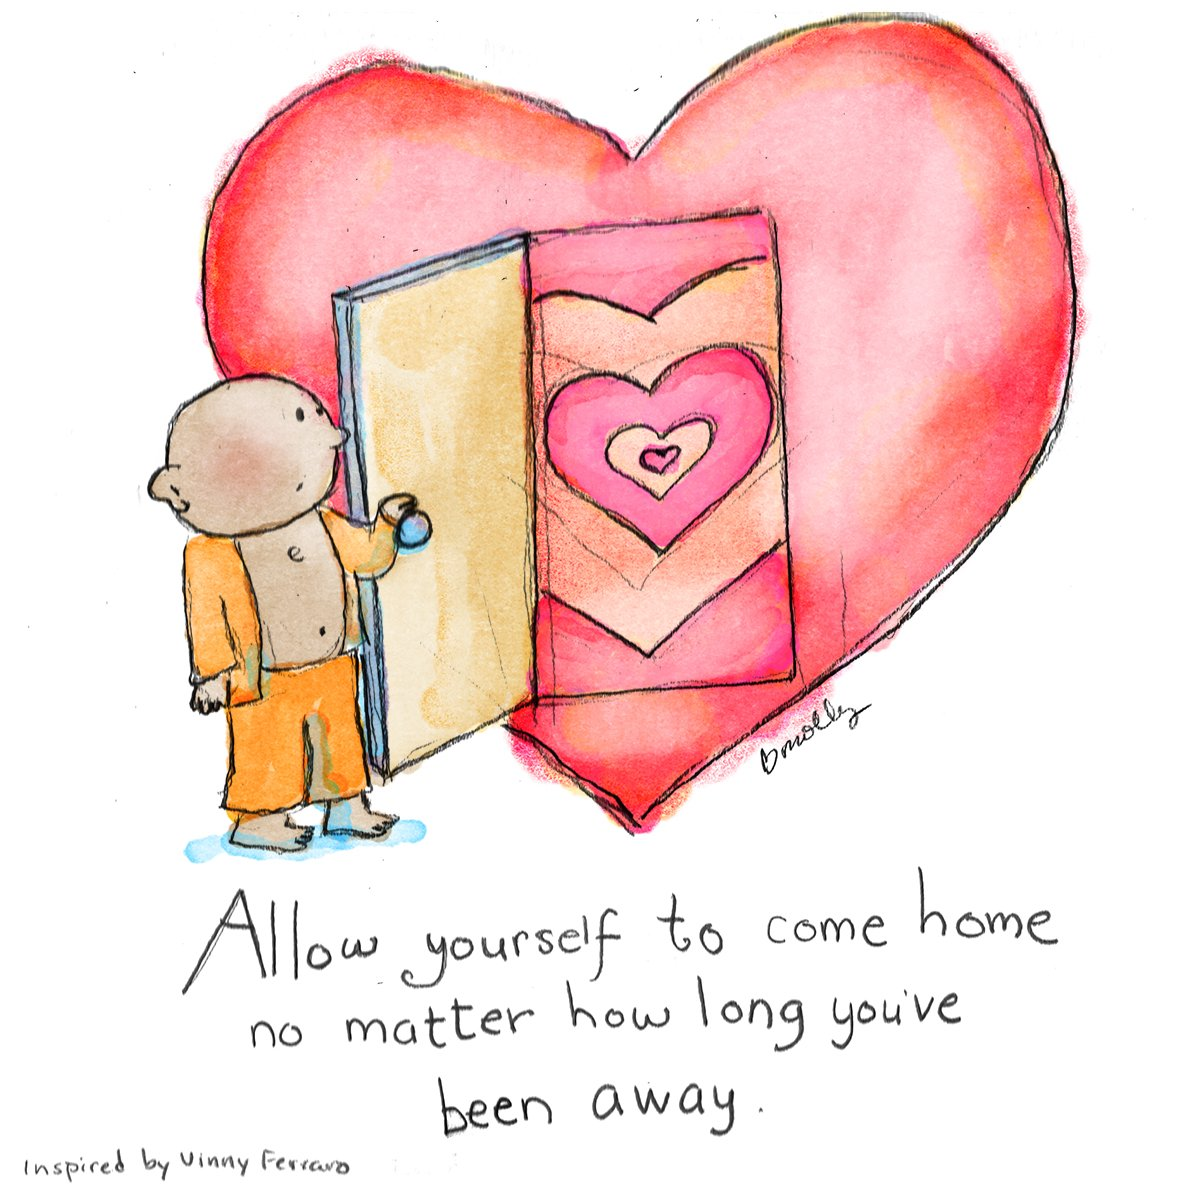 RT @KariJoys: Come home to your #Heart no matter how long you've been gone! #JoyTrain #Motivation https://t.co/8LmfNca9Tp RT @BuddhaDoodles